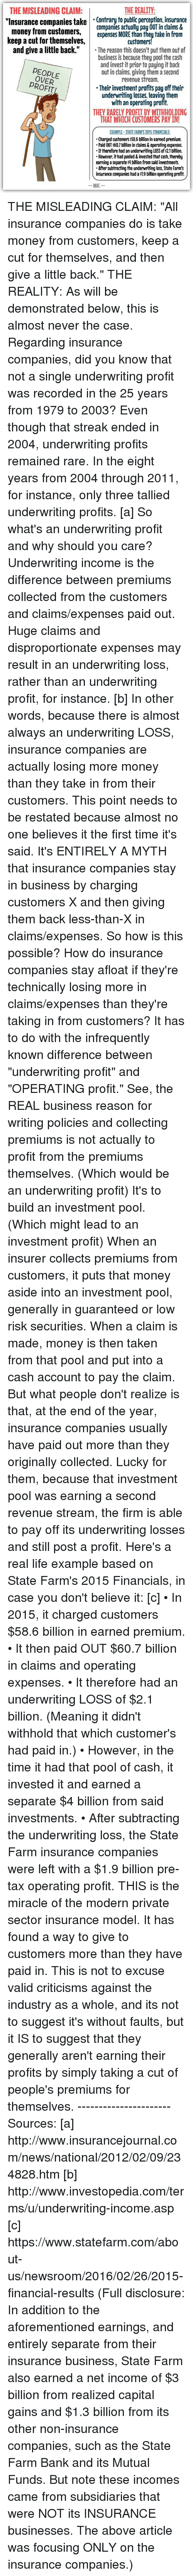 """Dank, Pool, and State Farm: THE REALITY  THE MISLEADING CLAIM:  """"Insurance companies take  Contrary to public perception, insurance  companies actually pay OUT in claims &  money from customers,  expenses MORE than they take in from  keep a cut for themselves,  customers!  and give a little back  The reason this doesn't put them out of  business is because they pool the cash  and invest it prior to paying it back  out in claims, giving them a second  OVER  revenue stream.  Their investment profits pay offtheir  underwriting losses, leaving them  with an operating profit.  THAT WHICH CUSTOMERS PAY IN!  XAMPLE-STATE FARMS 2015 FINANCIALS:  Charged customers $58.6 billion in earned premium.  Paid OUT $60.7 billion in claims&operating expenses.  It therefore had an underwriting LOSS of 21 billion.  However, it had pooled& invested that cash, thereby  earning a separate $4 billion from said investments.  After subtracting the underwriting loss. State Farm's  insurance companies had a $19 billion operating profit.  WAC THE MISLEADING CLAIM: """"All insurance companies do is take money from customers, keep a cut for themselves, and then give a little back.""""  THE REALITY: As will be demonstrated below, this is almost never the case.   Regarding insurance companies, did you know that not a single underwriting profit was recorded in the 25 years from 1979 to 2003? Even though that streak ended in 2004, underwriting profits remained rare. In the eight years from 2004 through 2011, for instance, only three tallied underwriting profits. [a]  So what's an underwriting profit and why should you care?  Underwriting income is the difference between premiums collected from the customers and claims/expenses paid out. Huge claims and disproportionate expenses may result in an underwriting loss, rather than an underwriting profit, for instance. [b] In other words, because there is almost always an underwriting LOSS, insurance companies are actually losing more money than they take in from """